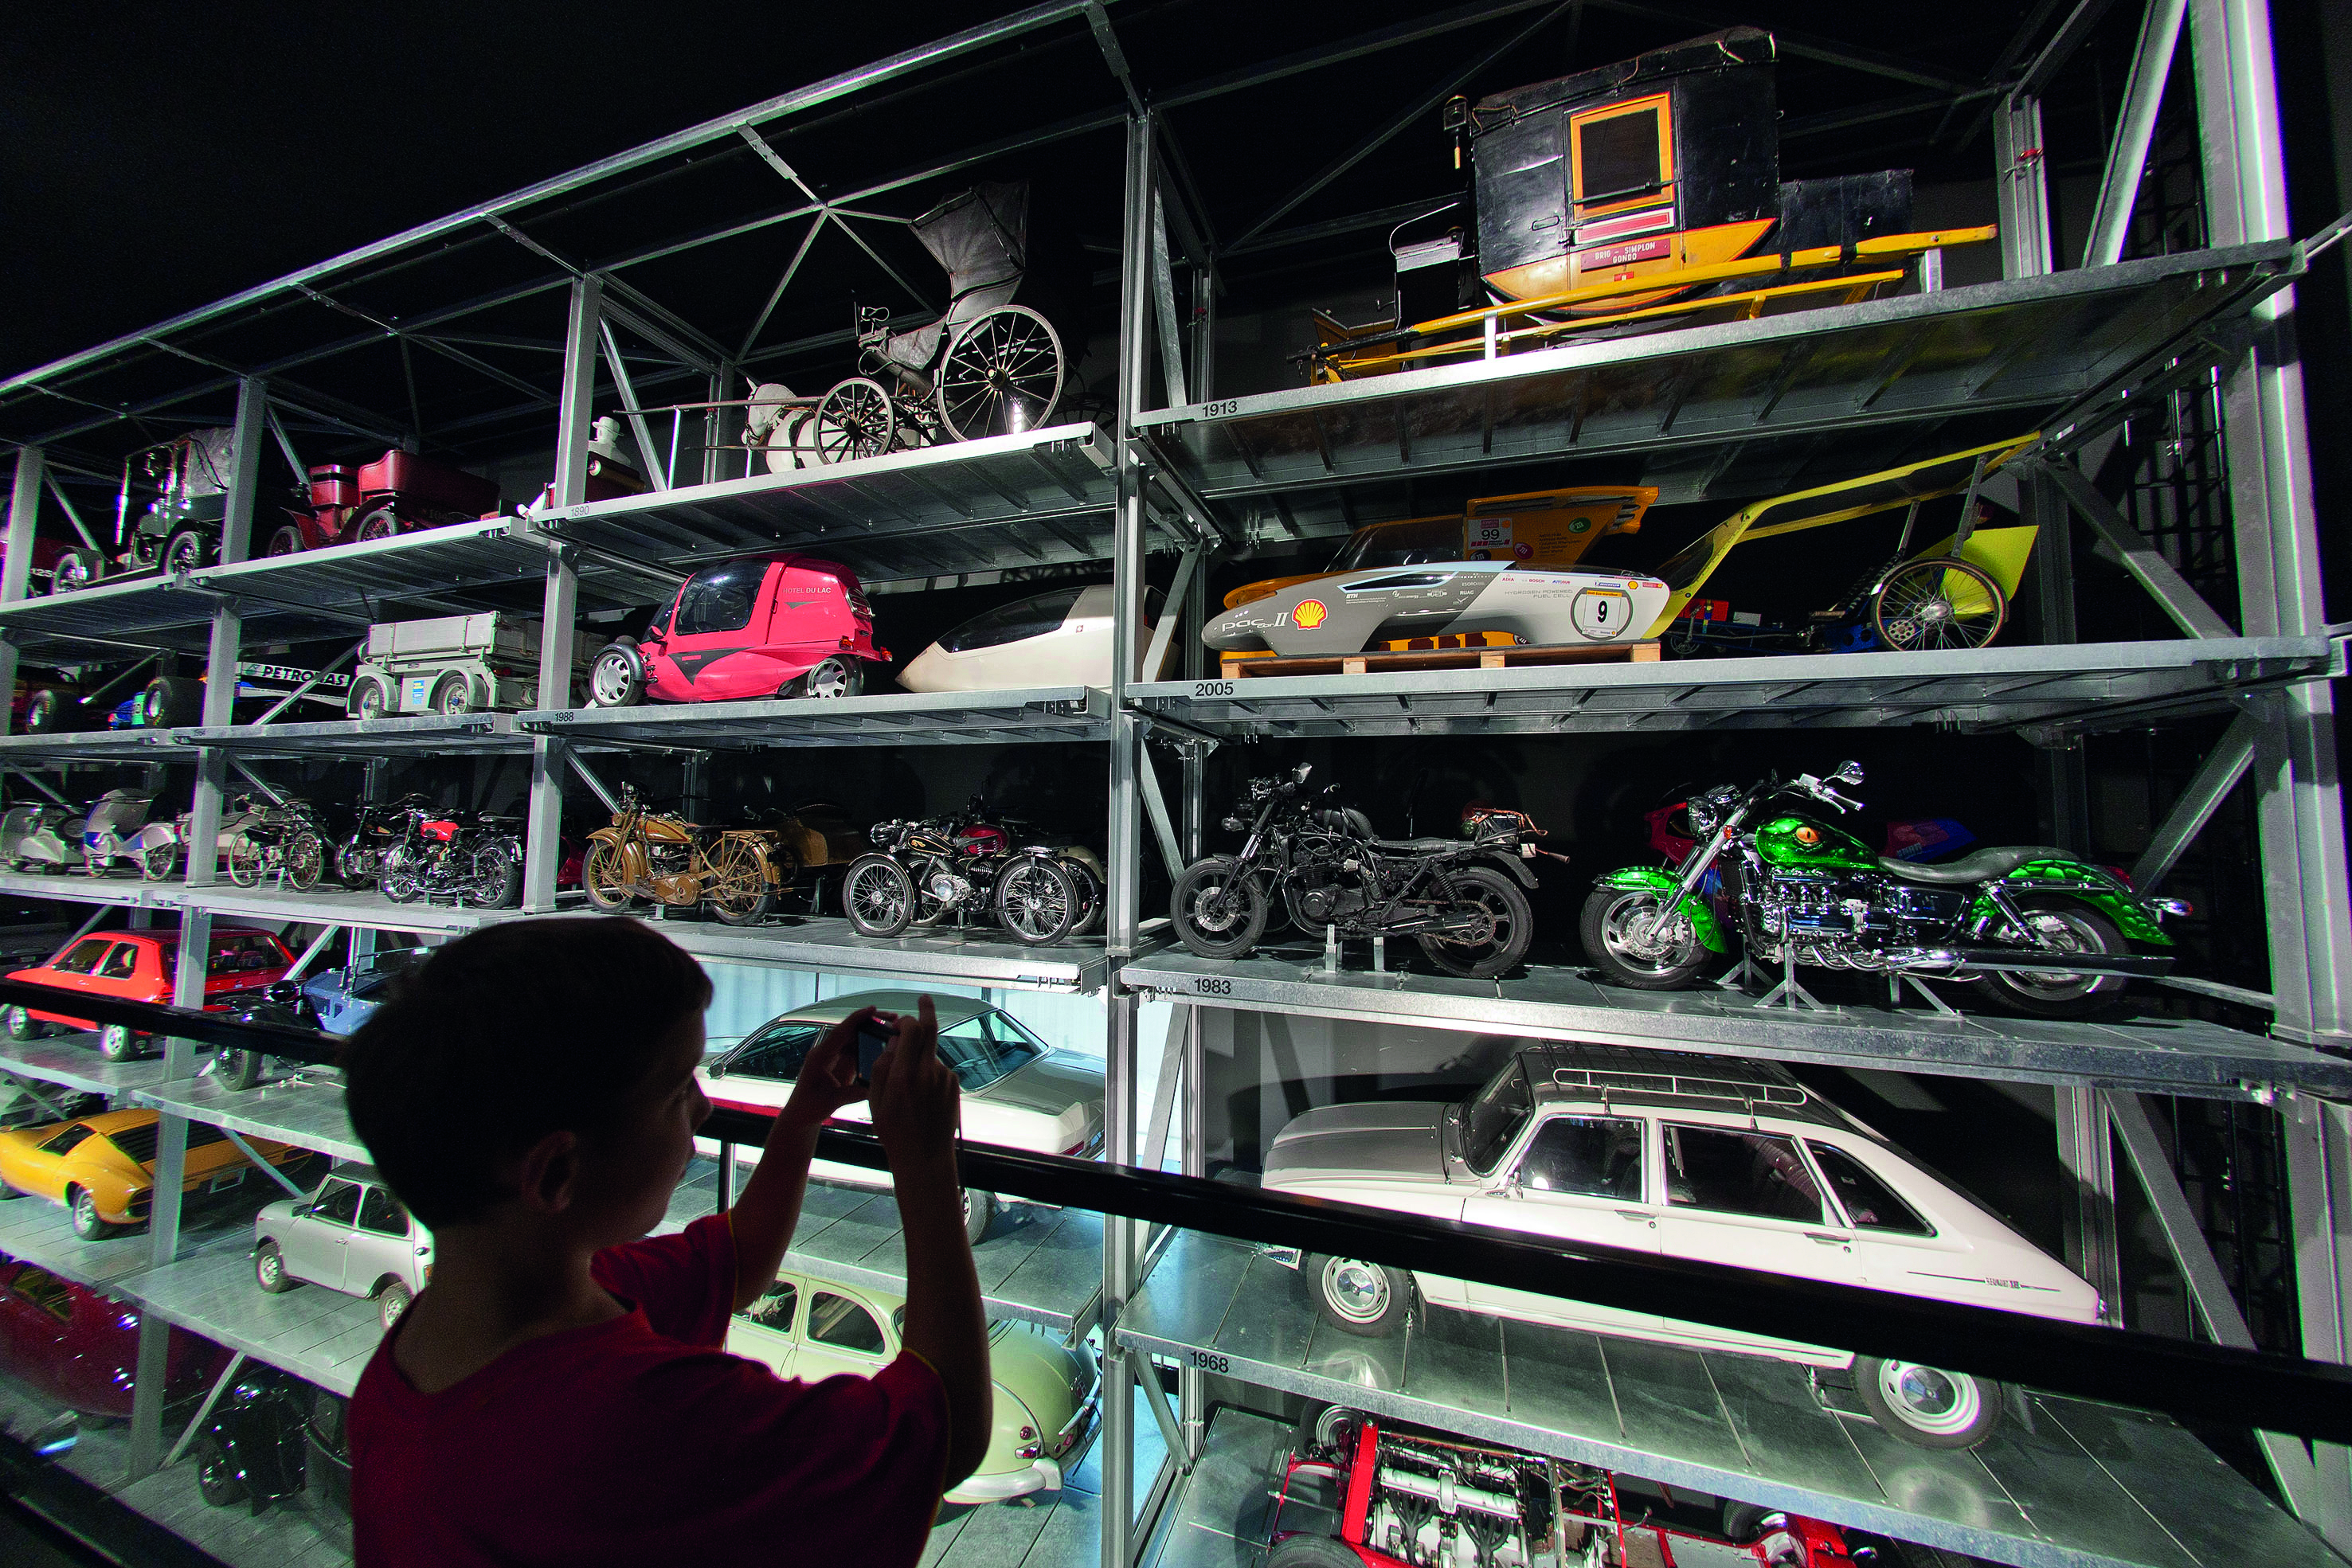 A child admires toy cars at the Swiss Museum of Transport.